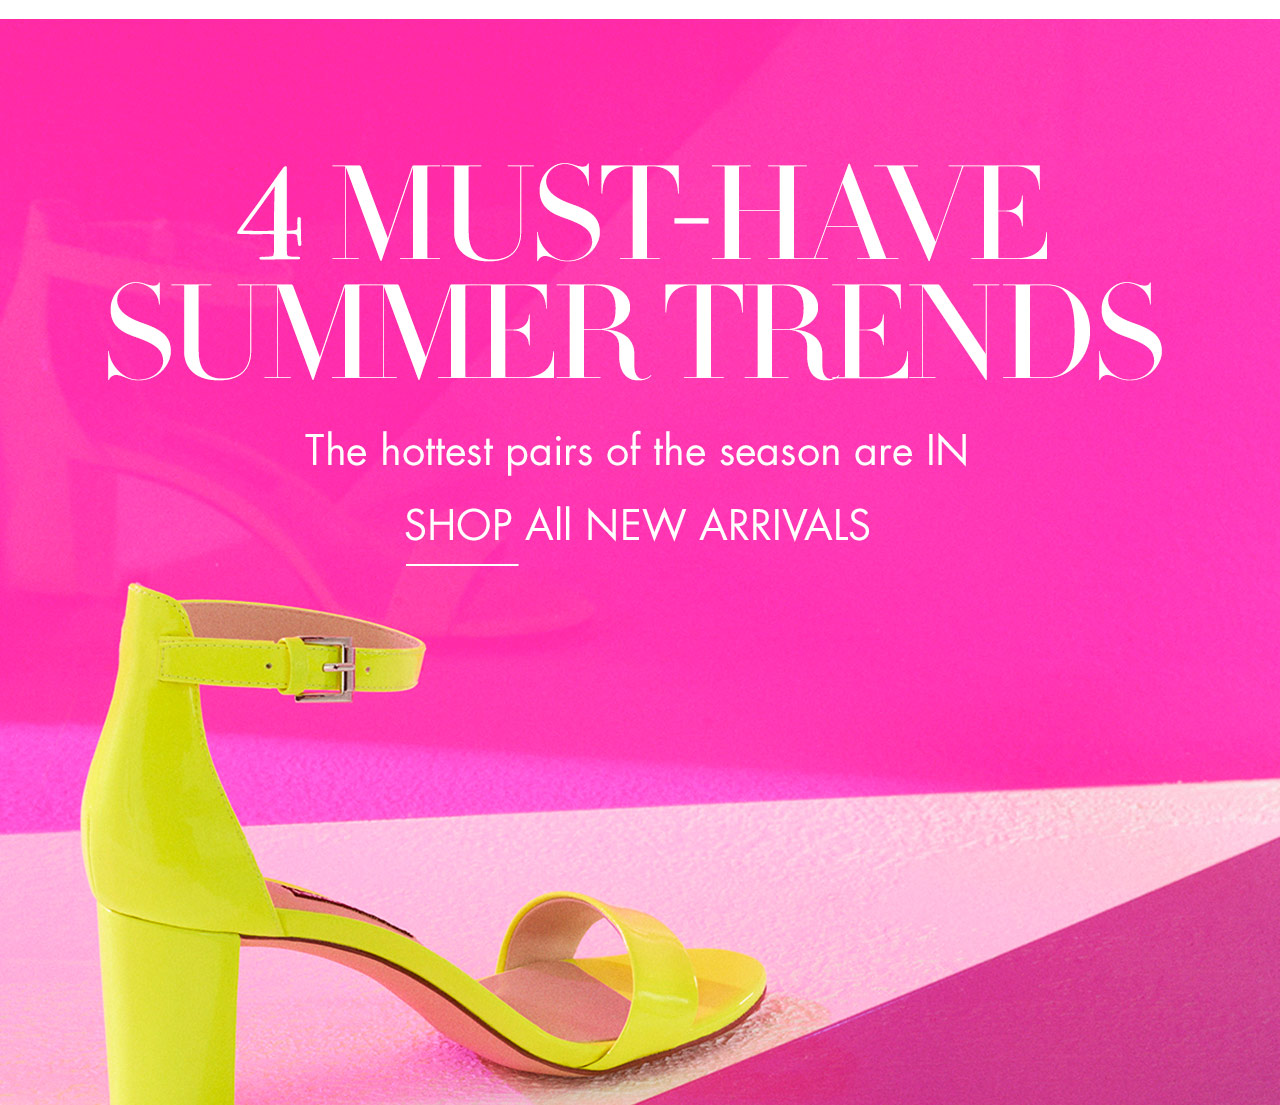 4 Must-Have Summer Trends - Shop Now